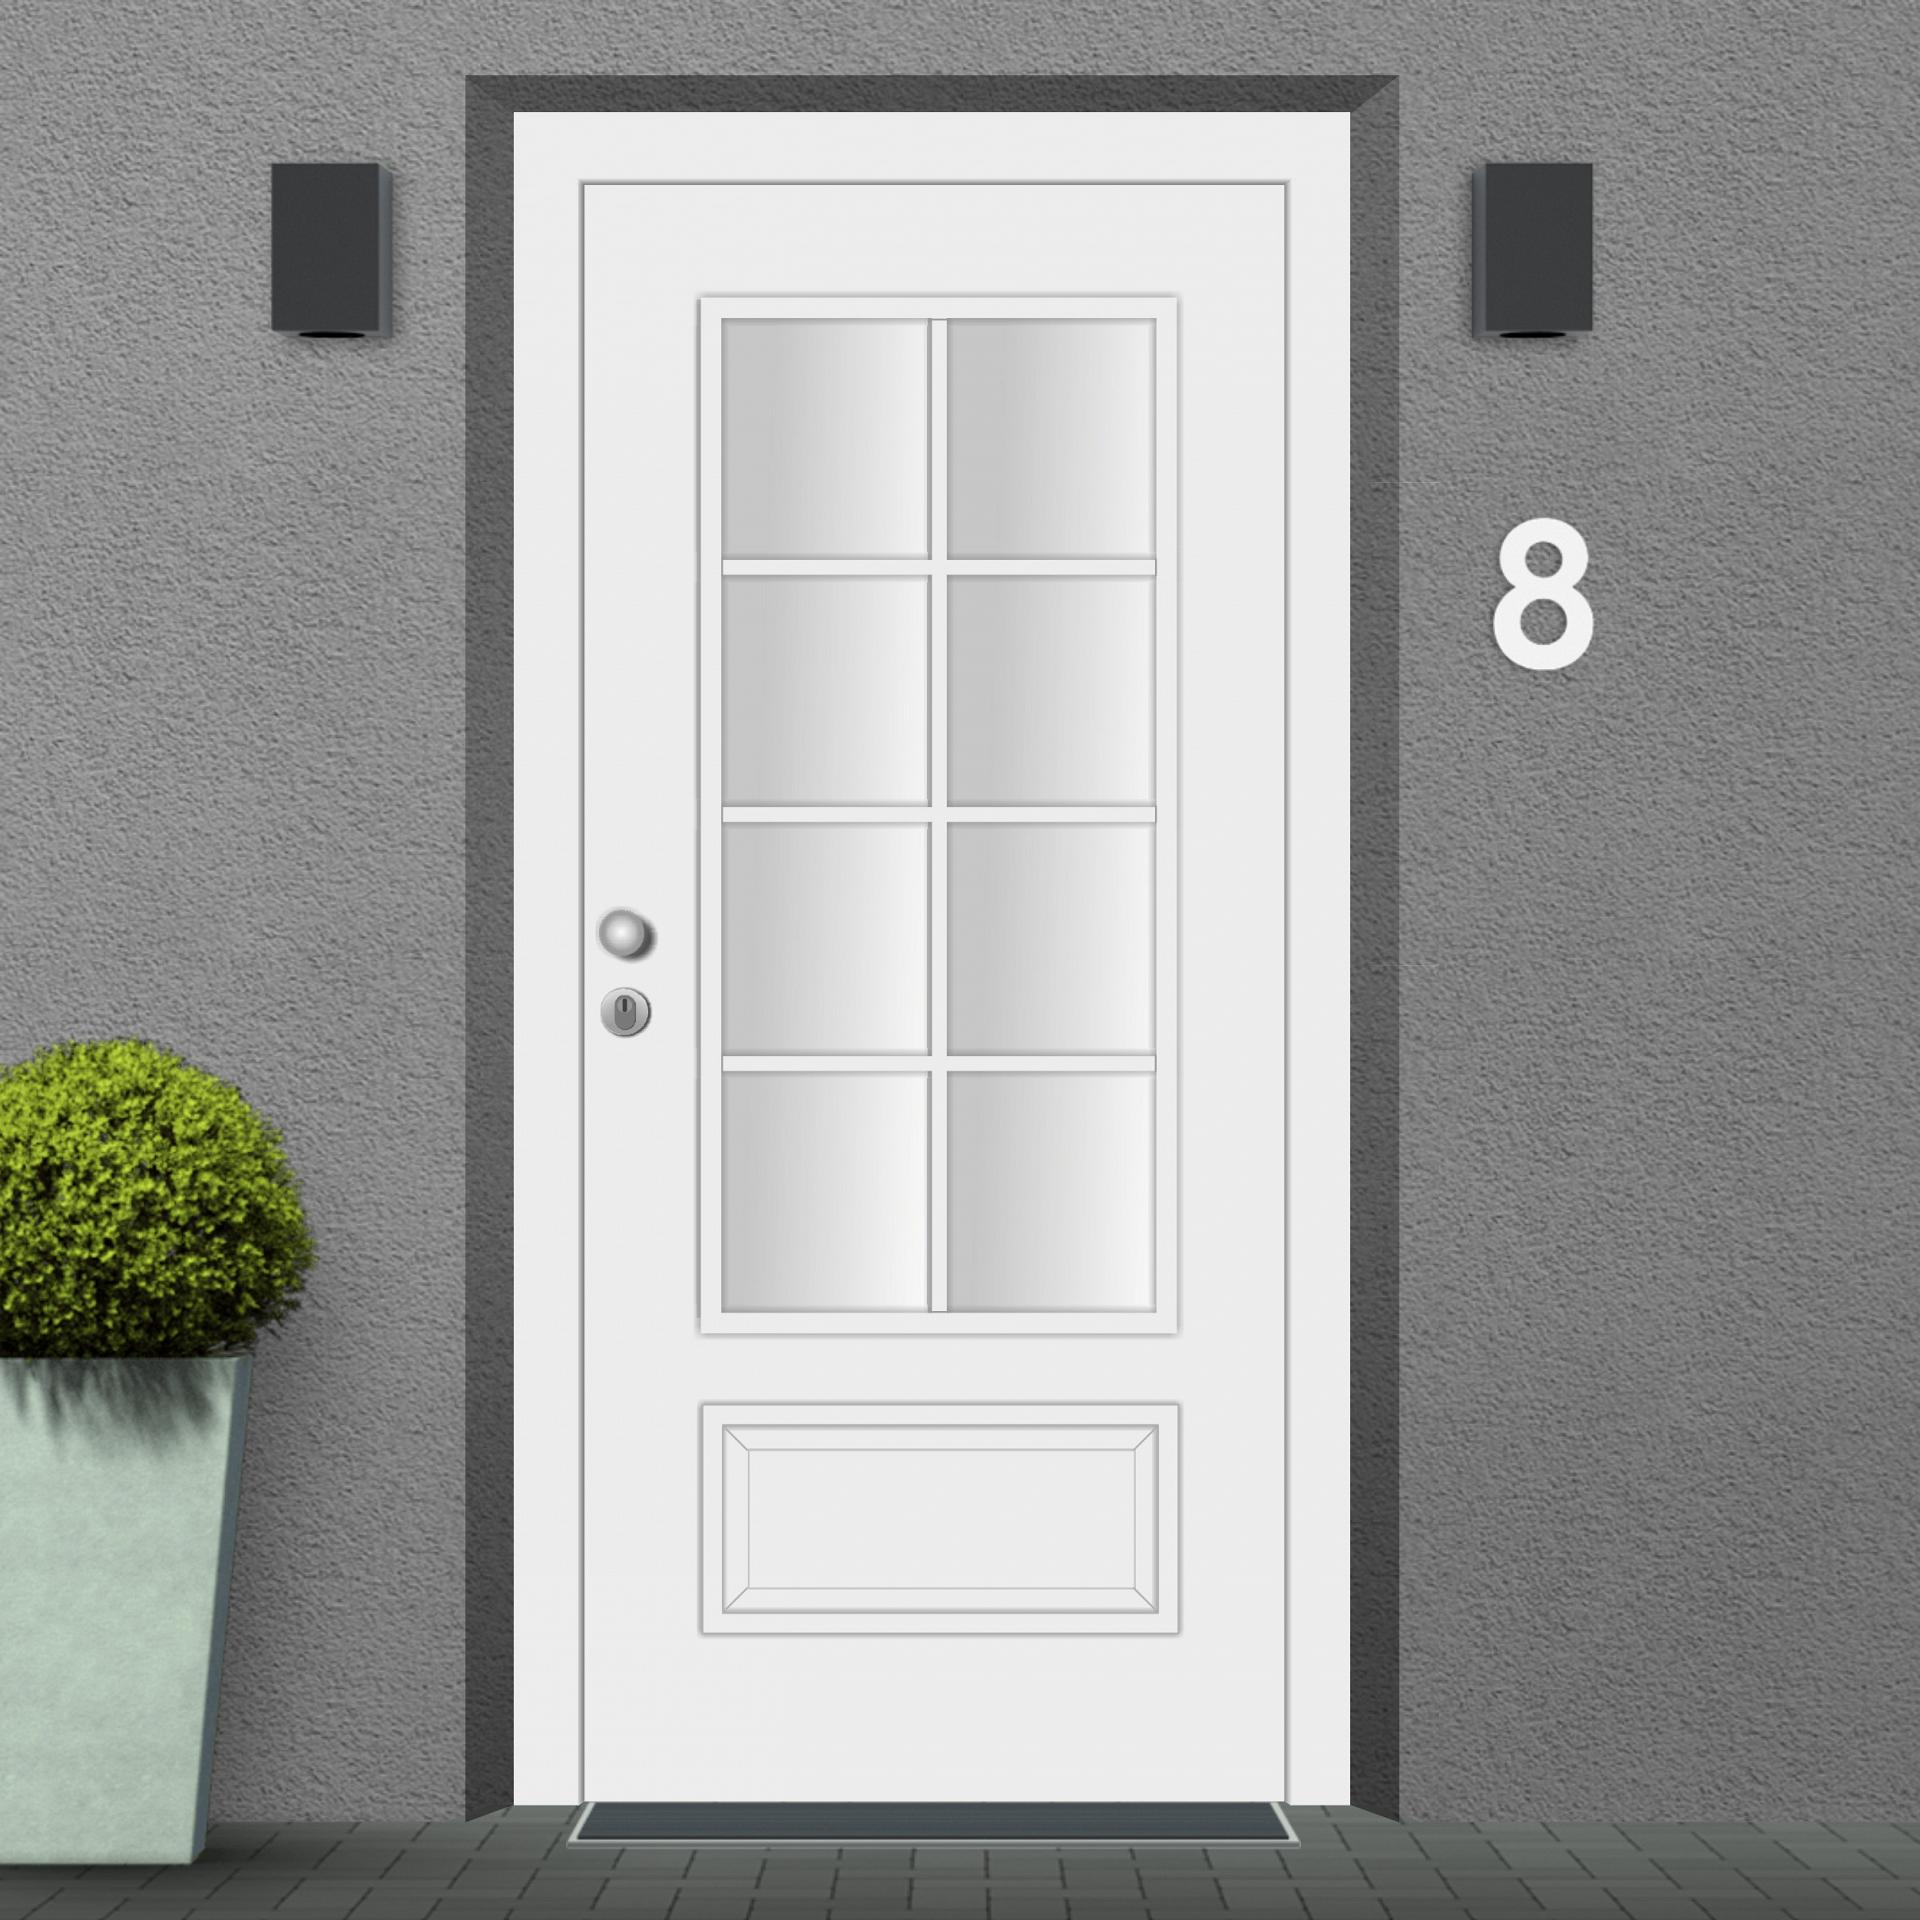 Mounting Example of a San Francsico Front Door